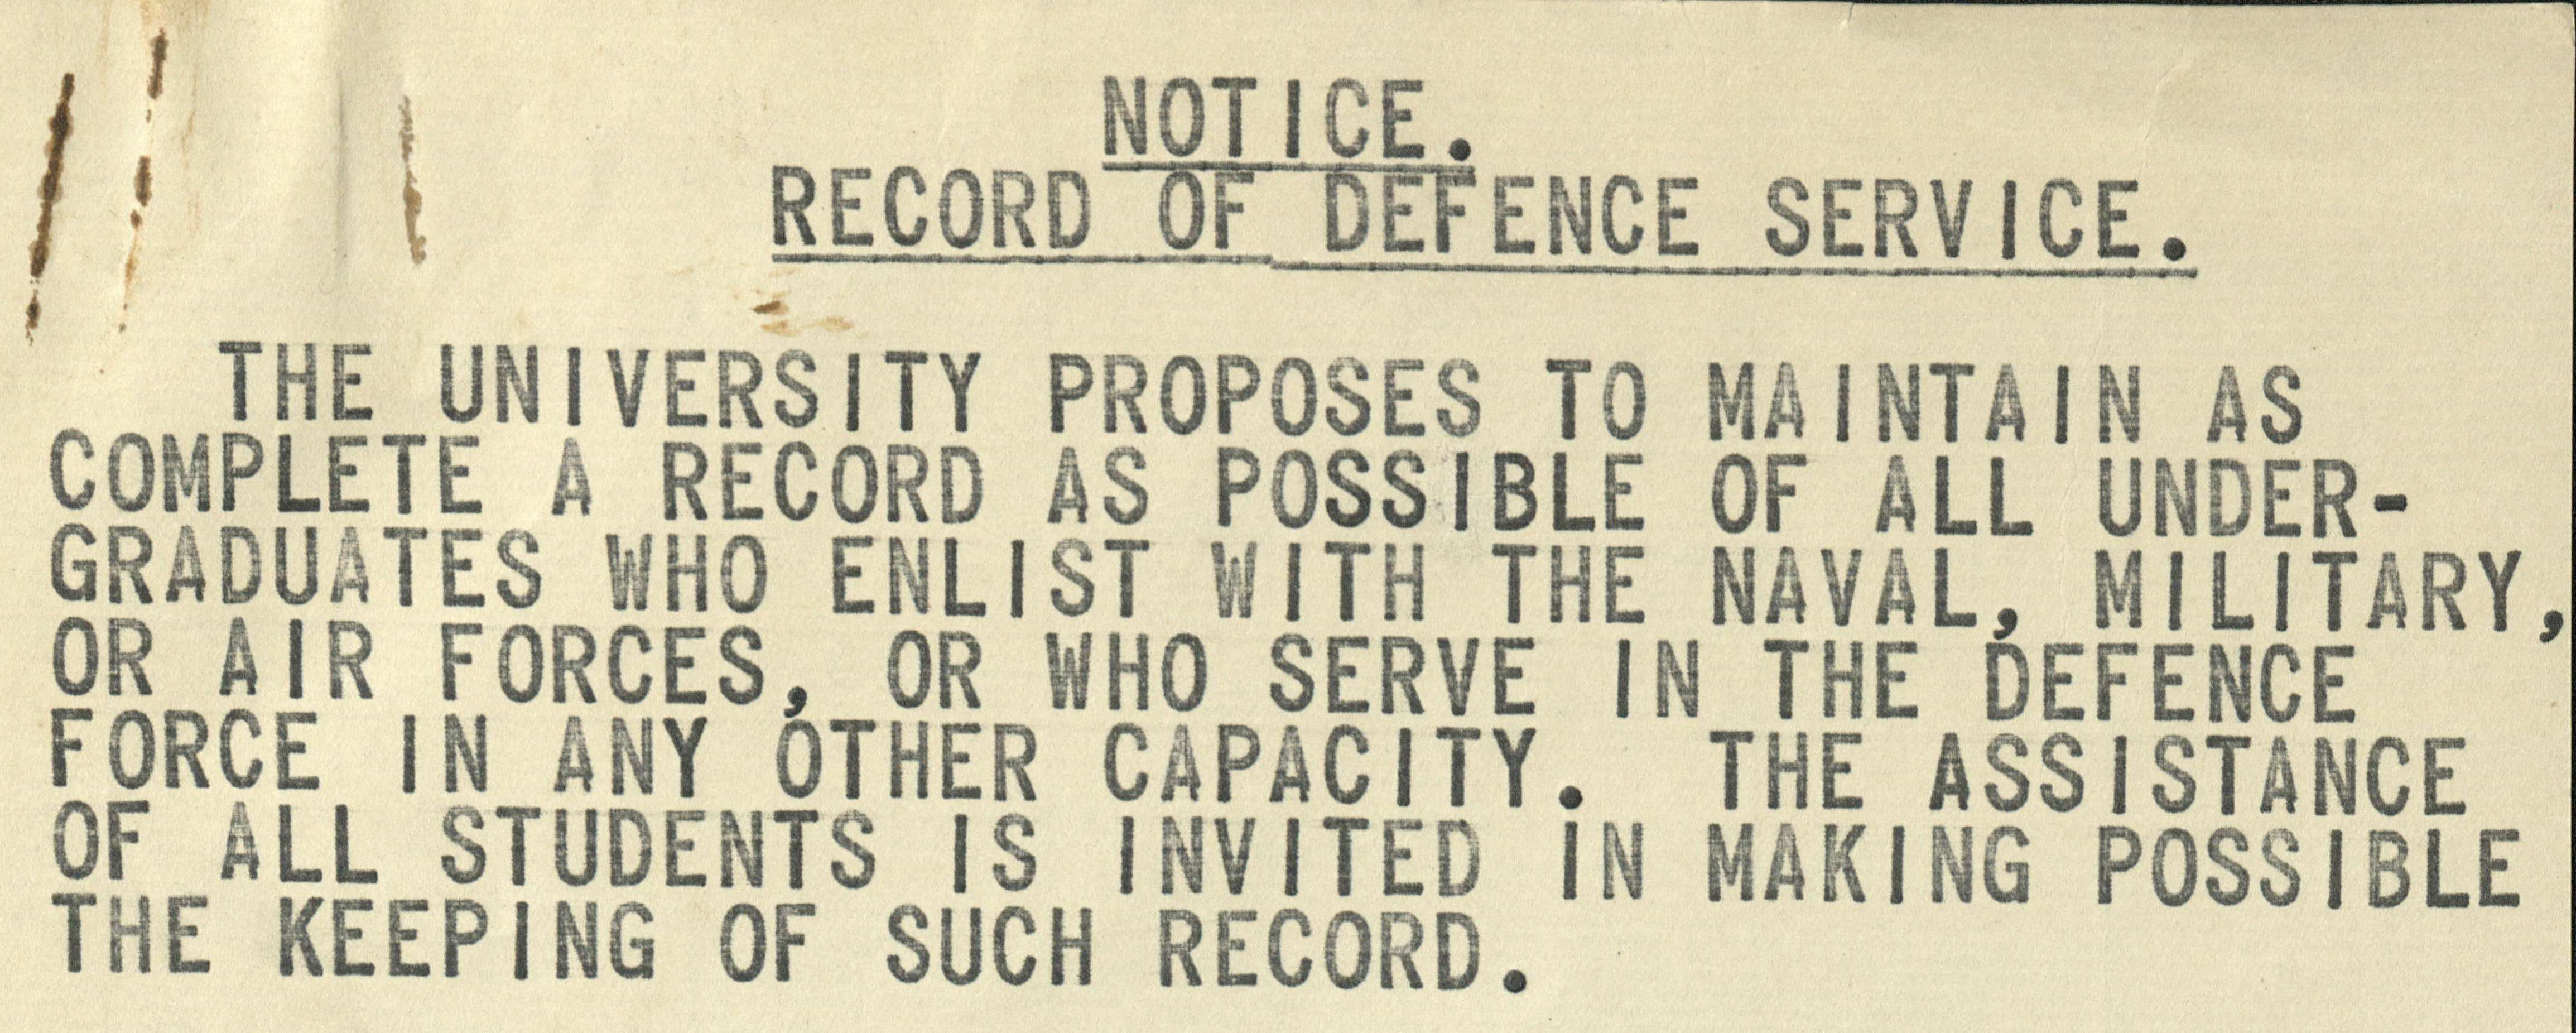 Notice. Record of Defence service. The University proposes to maintain as complete a record as possible of all undergraduates who enlist with the naval, military, or air forces, or who serve in the Defence Force in any other capacity. The assistance of all students is invited in making possible the keeping of such record.